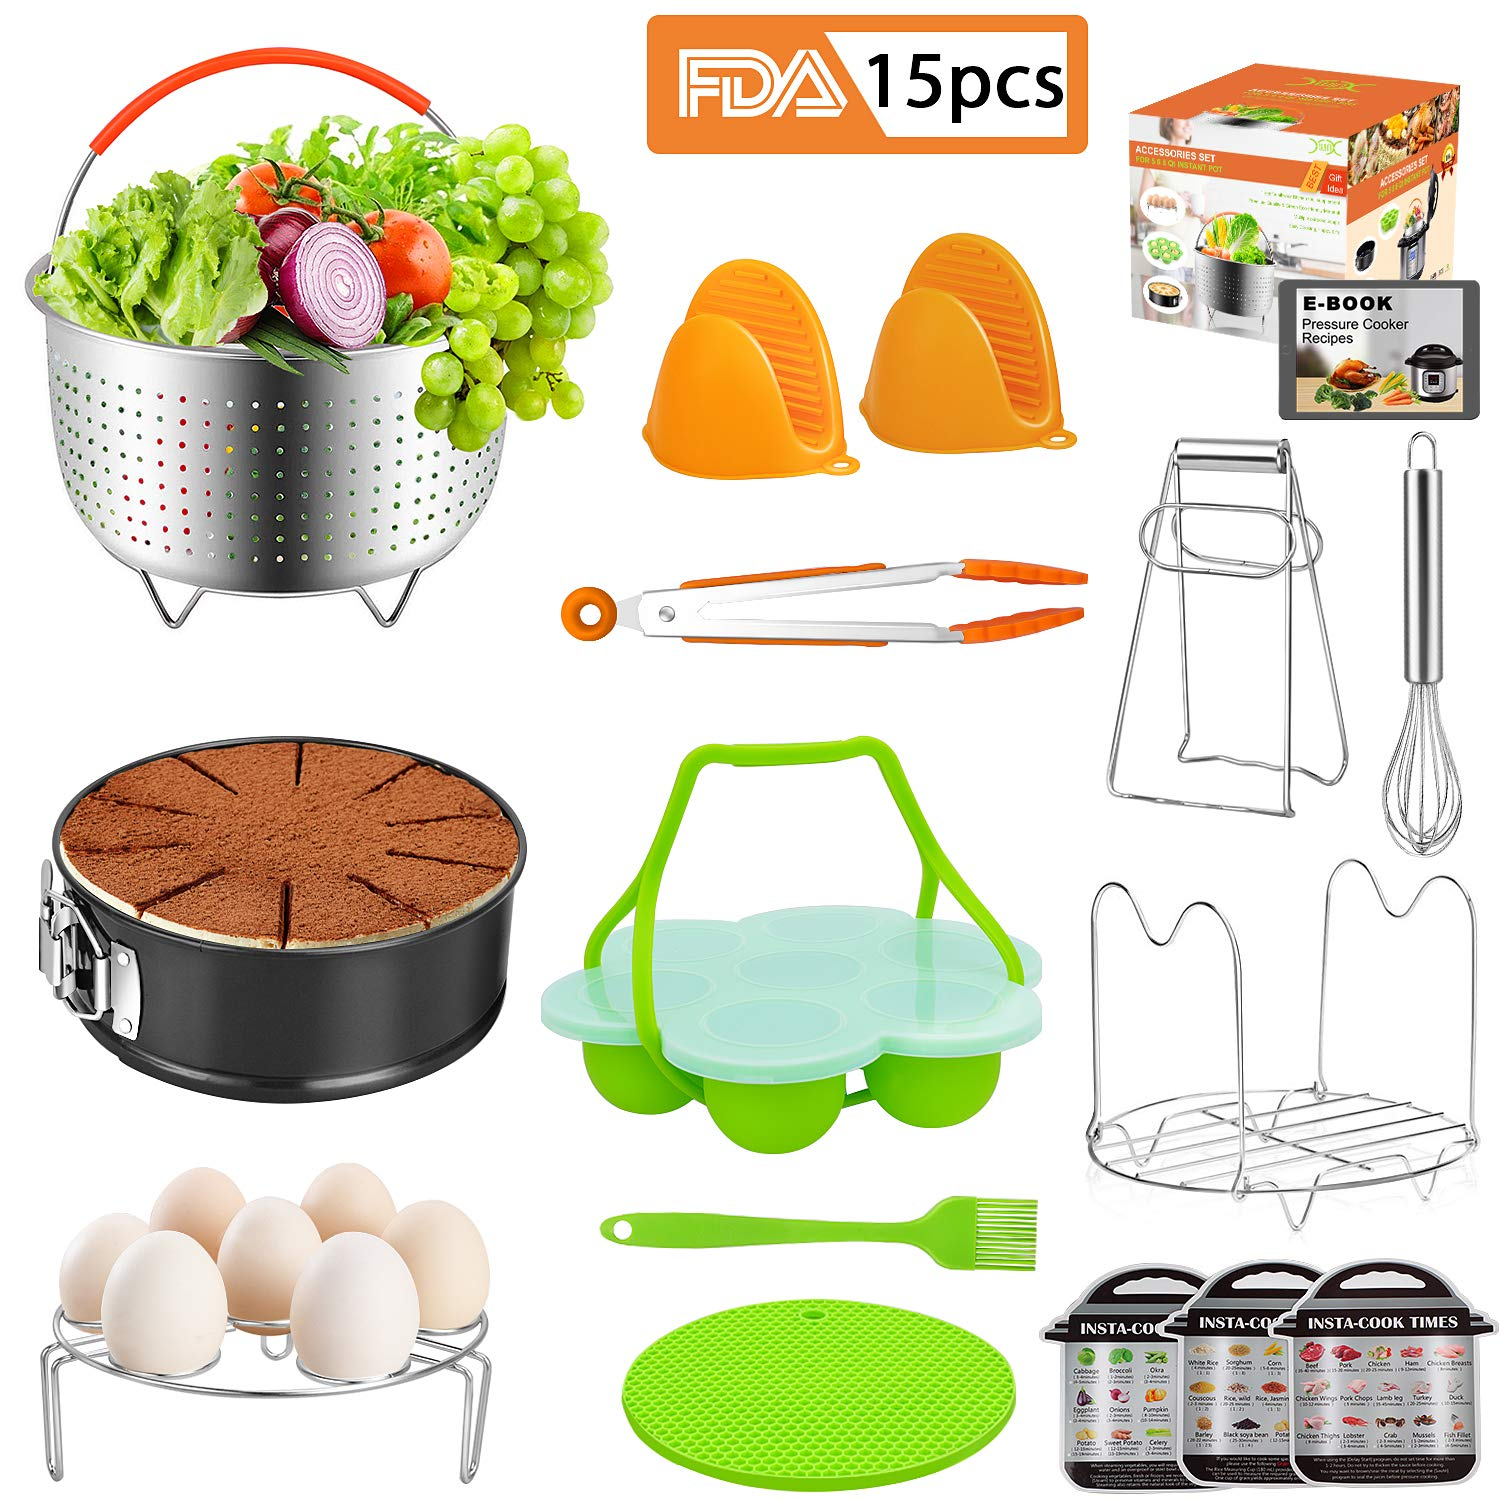 Instant Pot Accessories 15Pcs Set Compatible with Pressure Cooker 5,6,8 Qt, Steamer Basket,Springform Pan,Steamer Rack, Egg Bites Mold,Tongs, Silicone Oven Mitts, Magnetic Cheat Sheets(BONUS RECIPES)